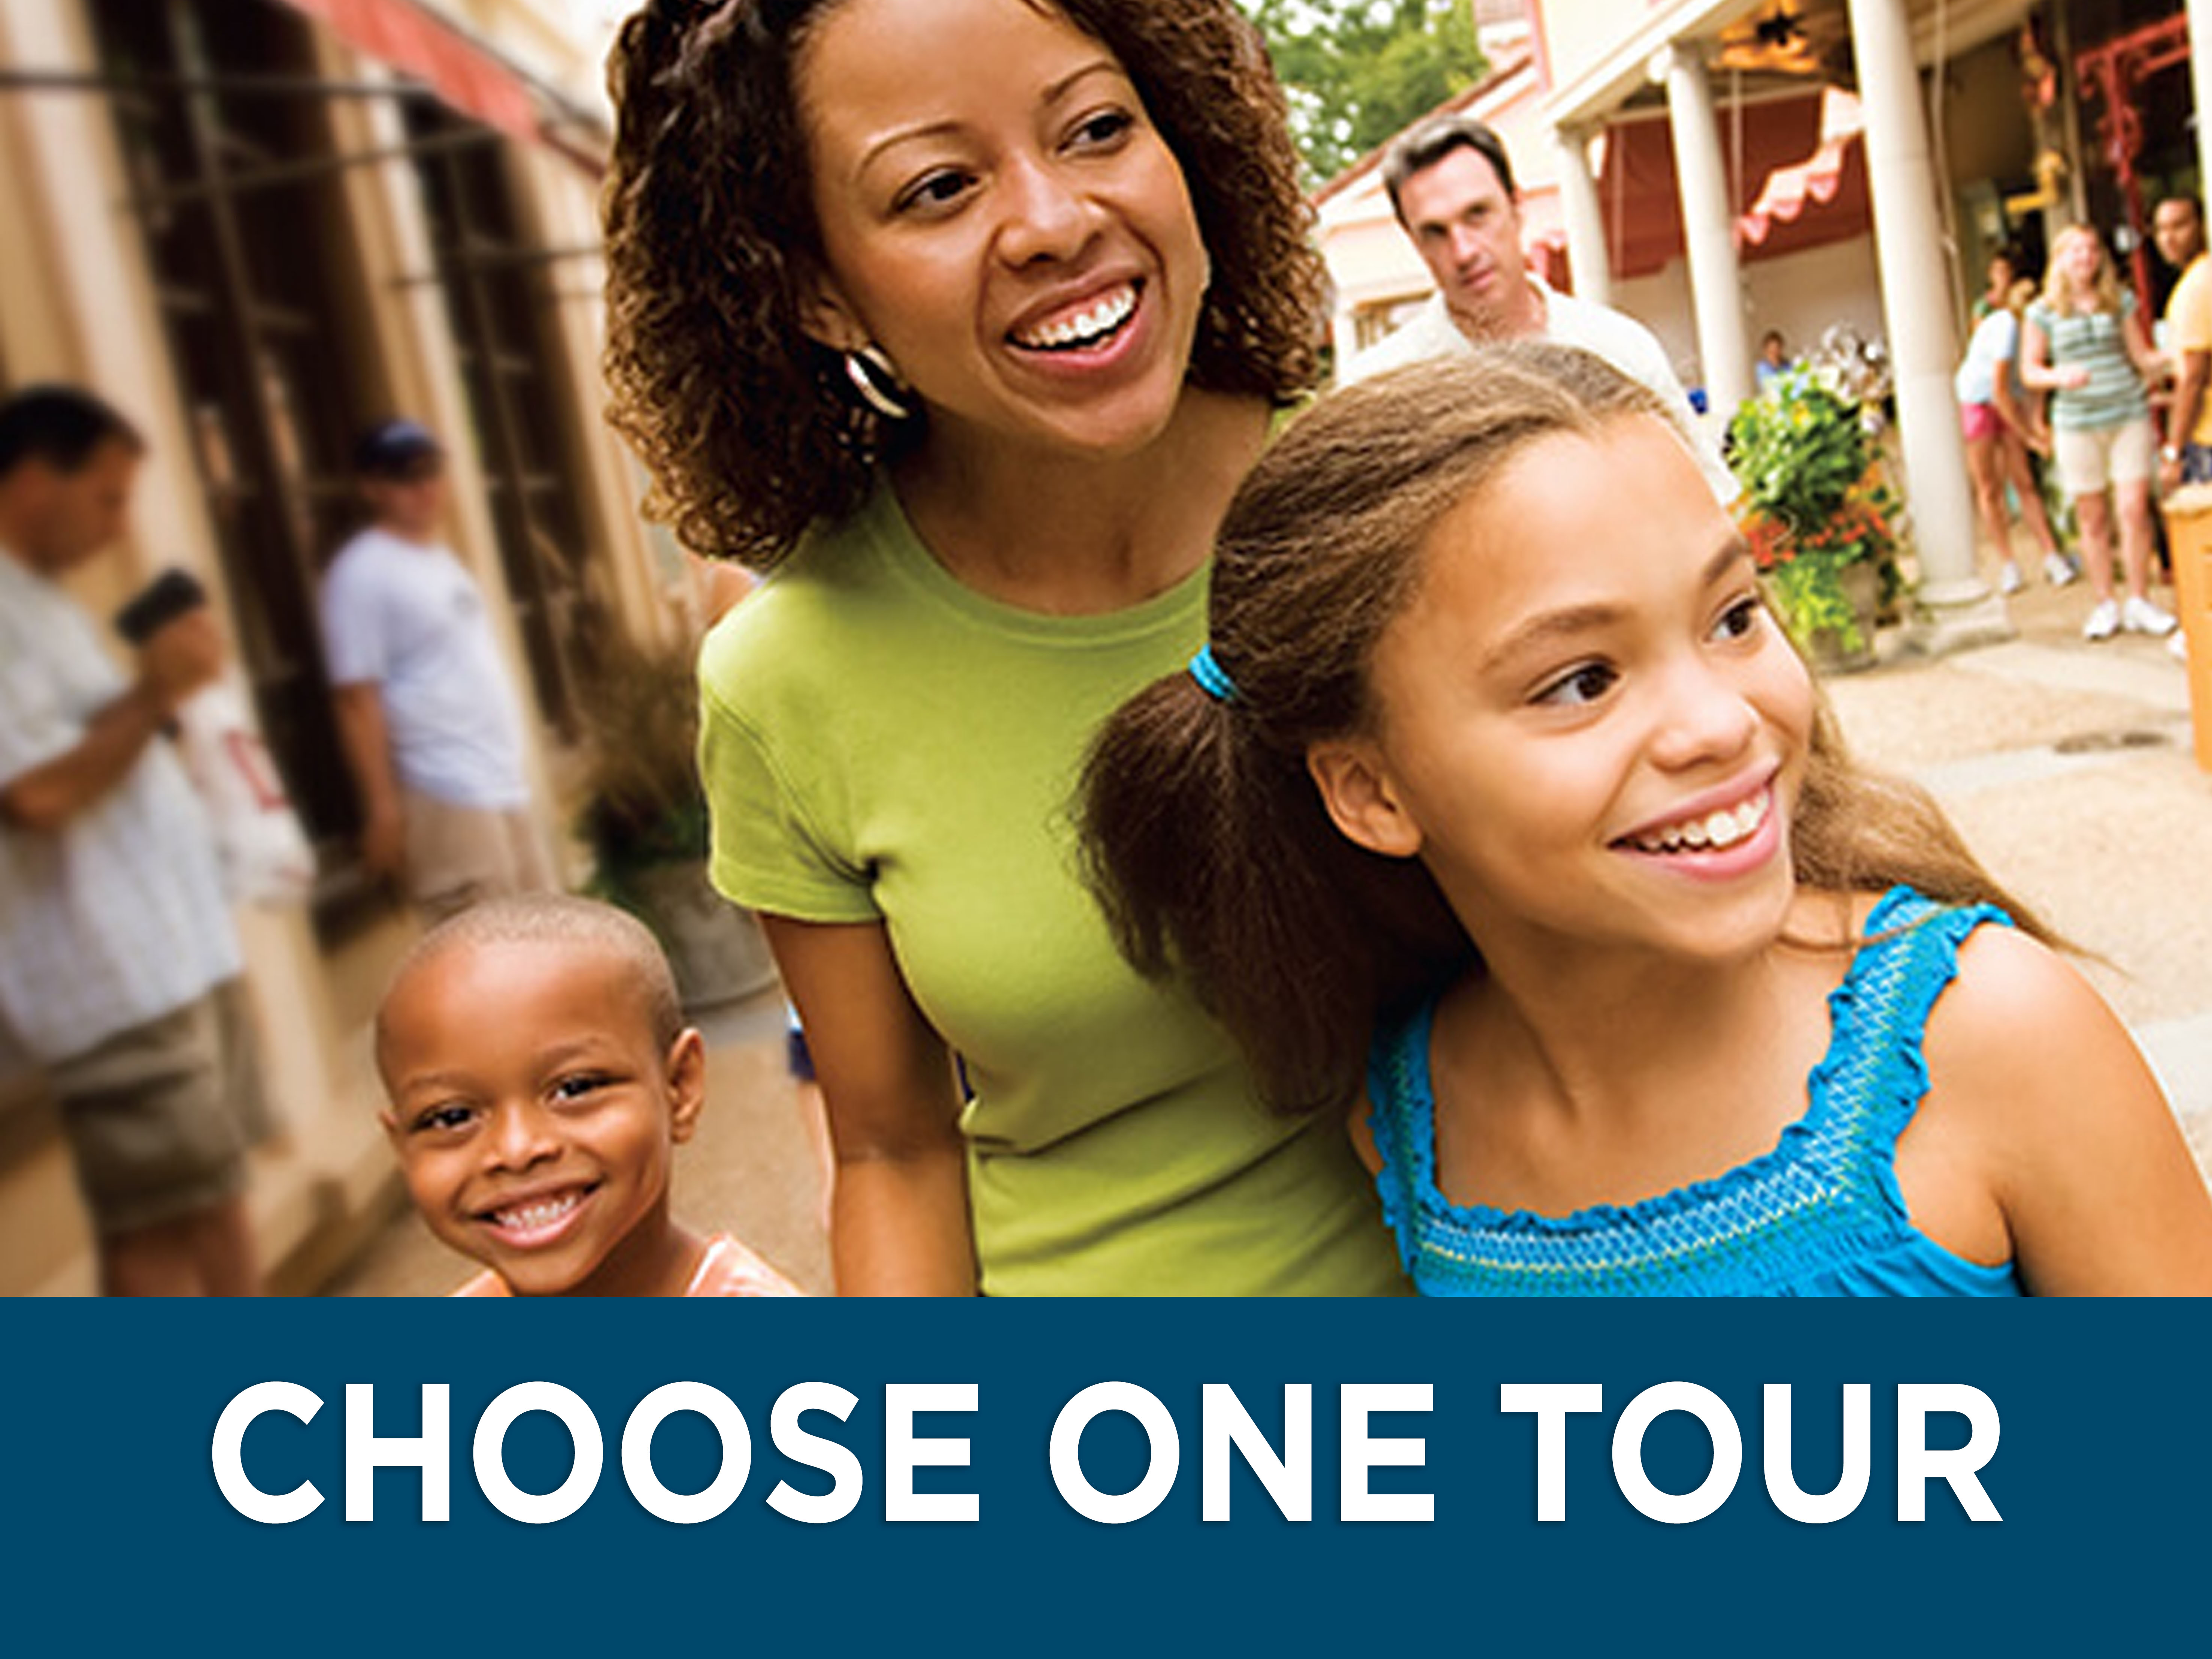 Busch Gardens Williamsburg Guided Adventure Tours with kid-friendly and general park experiences available.